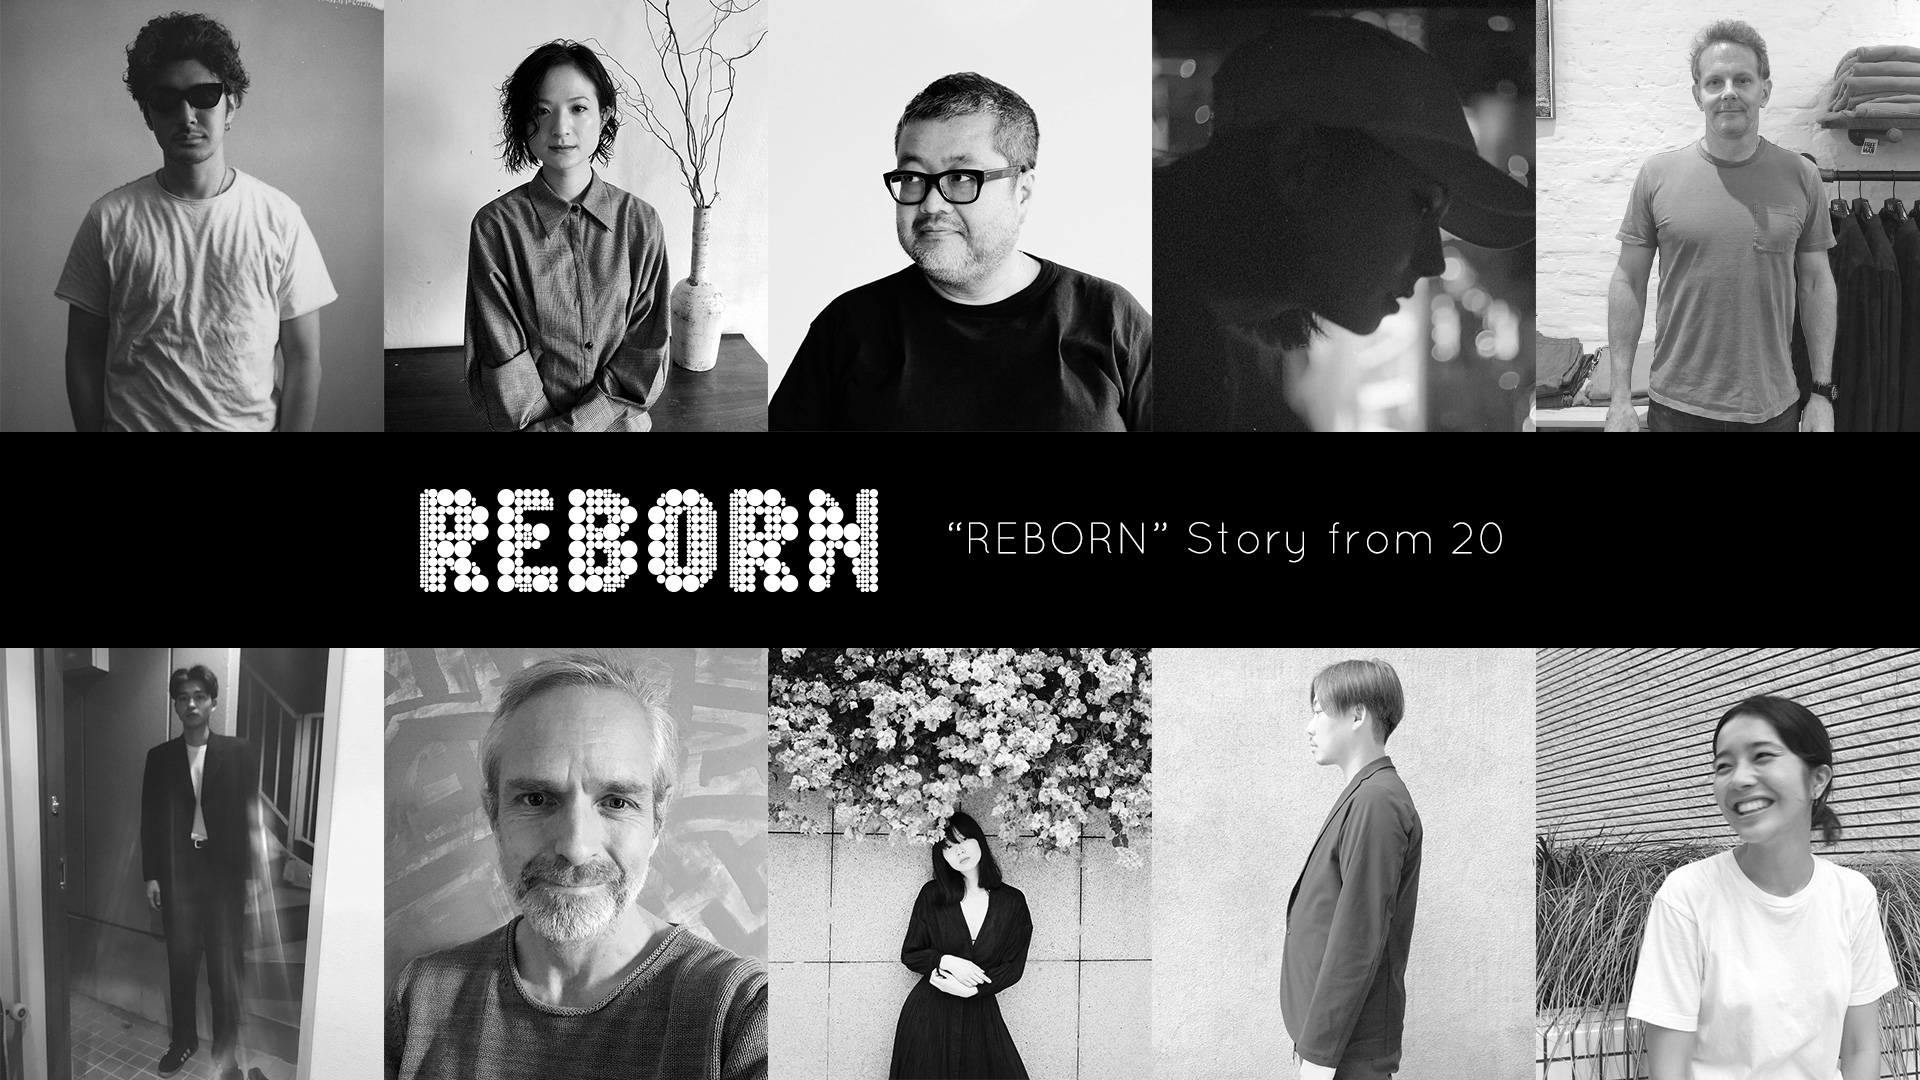 REBORN Story from 20